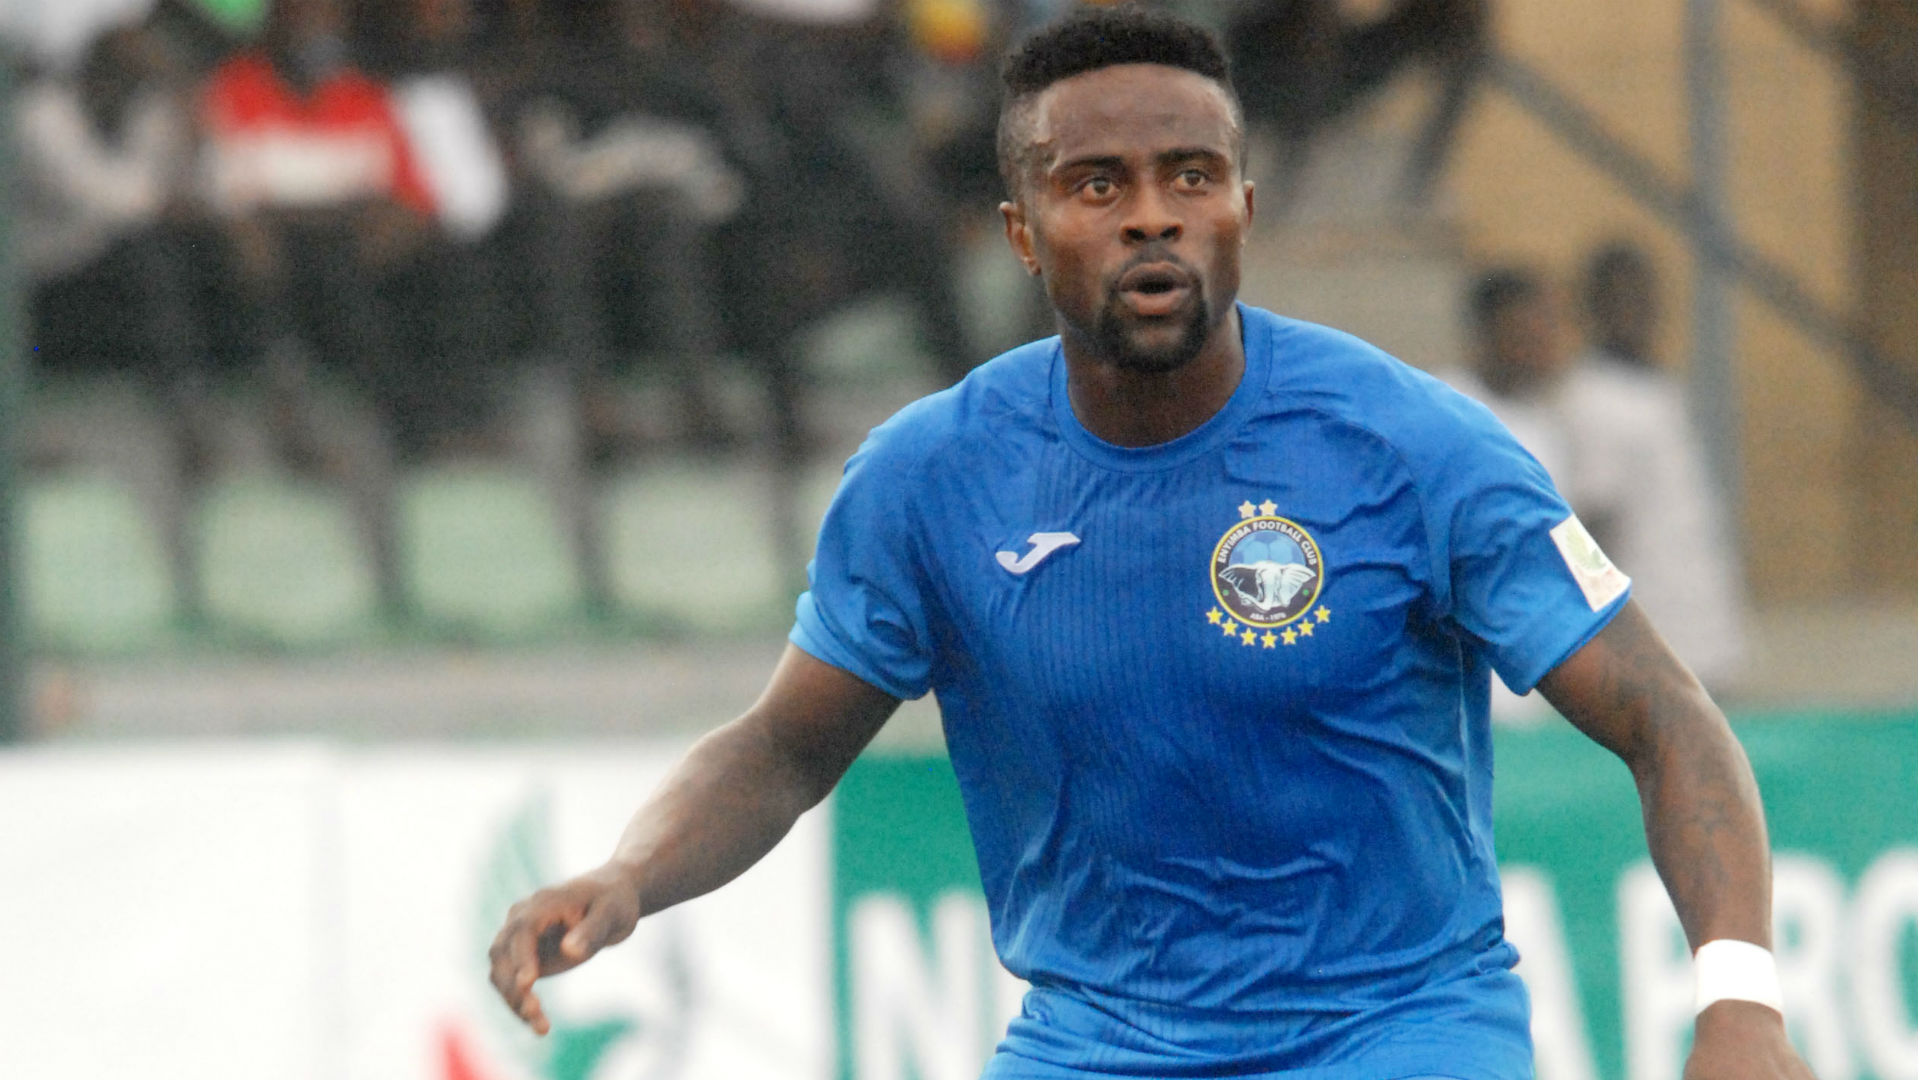 PPG: Enyimba does not deserve to be second – Stanley Dimgba